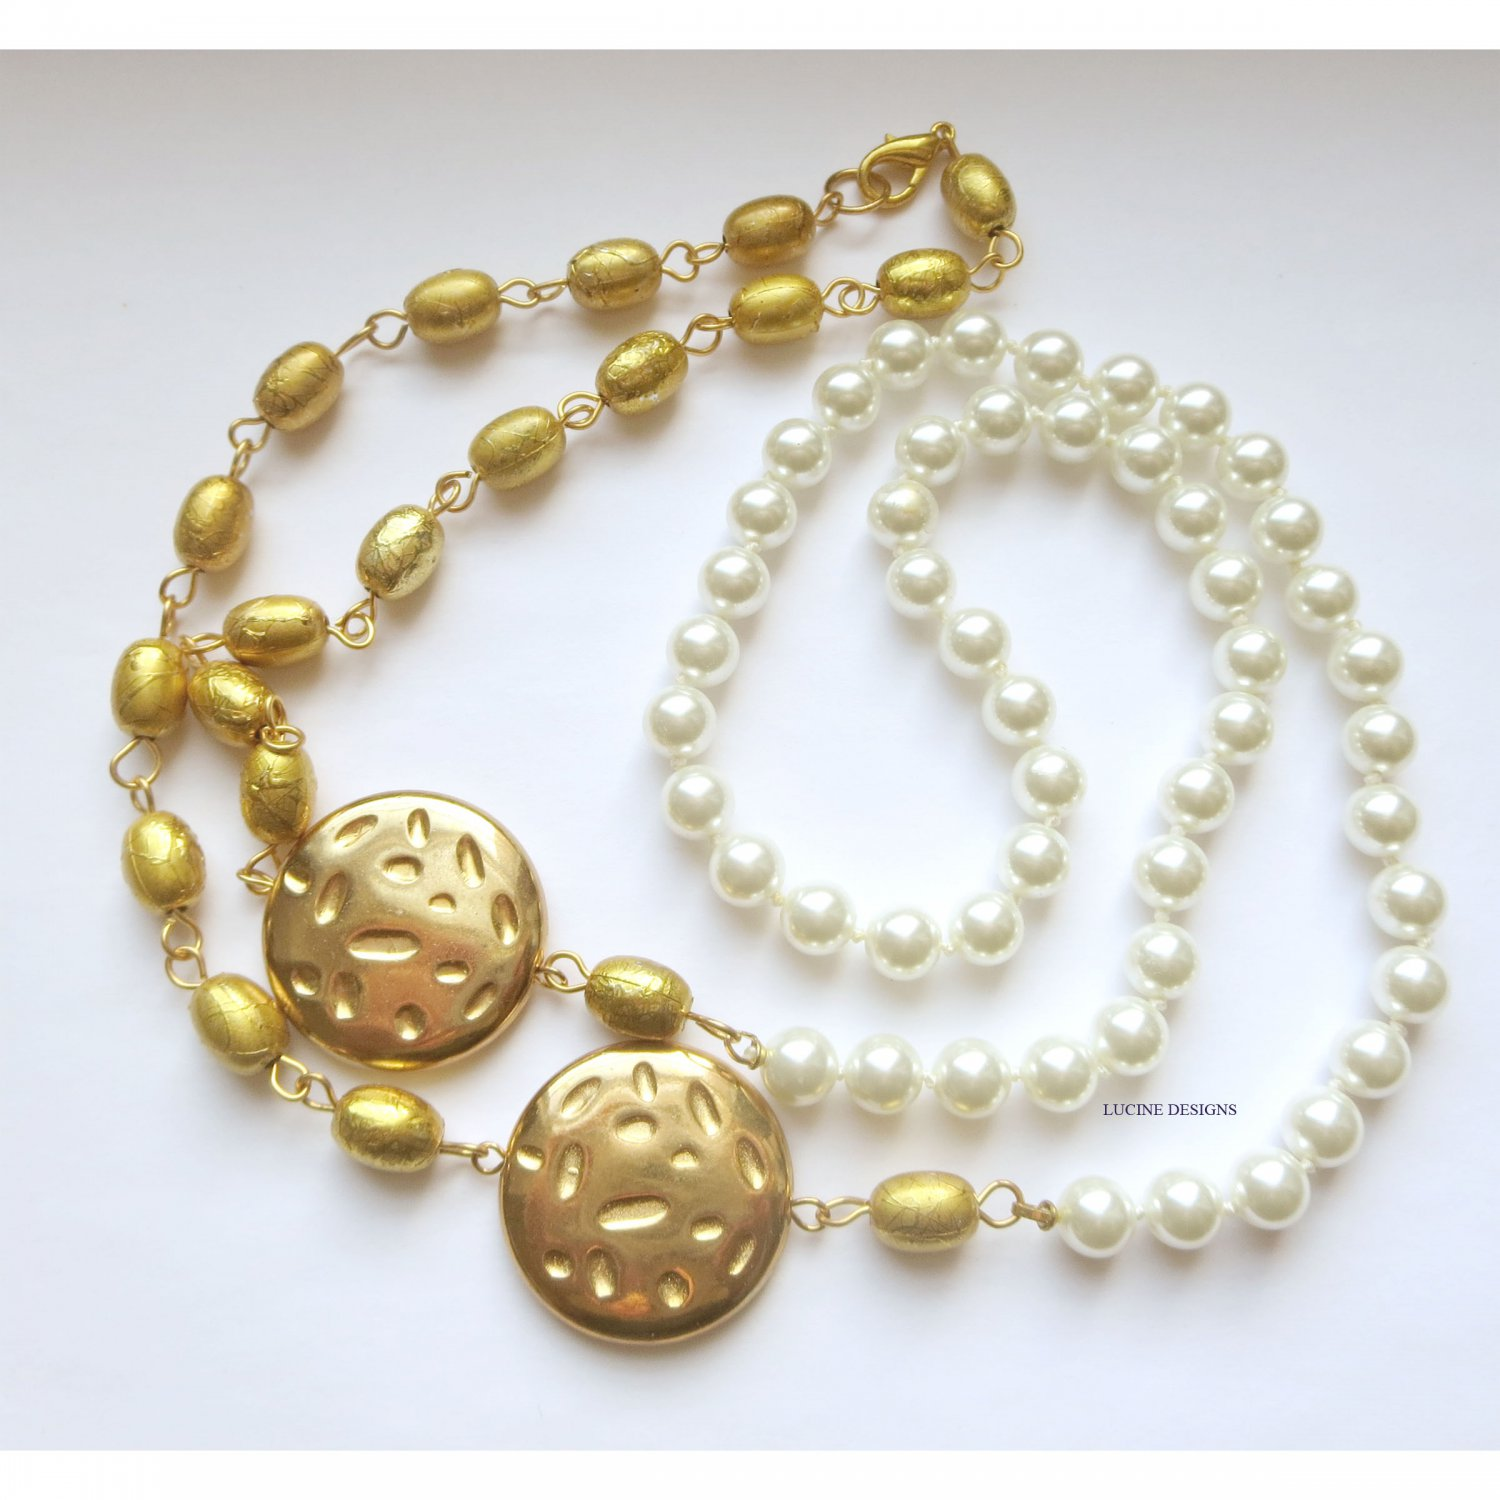 Gold and handknotted faux pearl ooak trendy long fashion necklace by Lucine